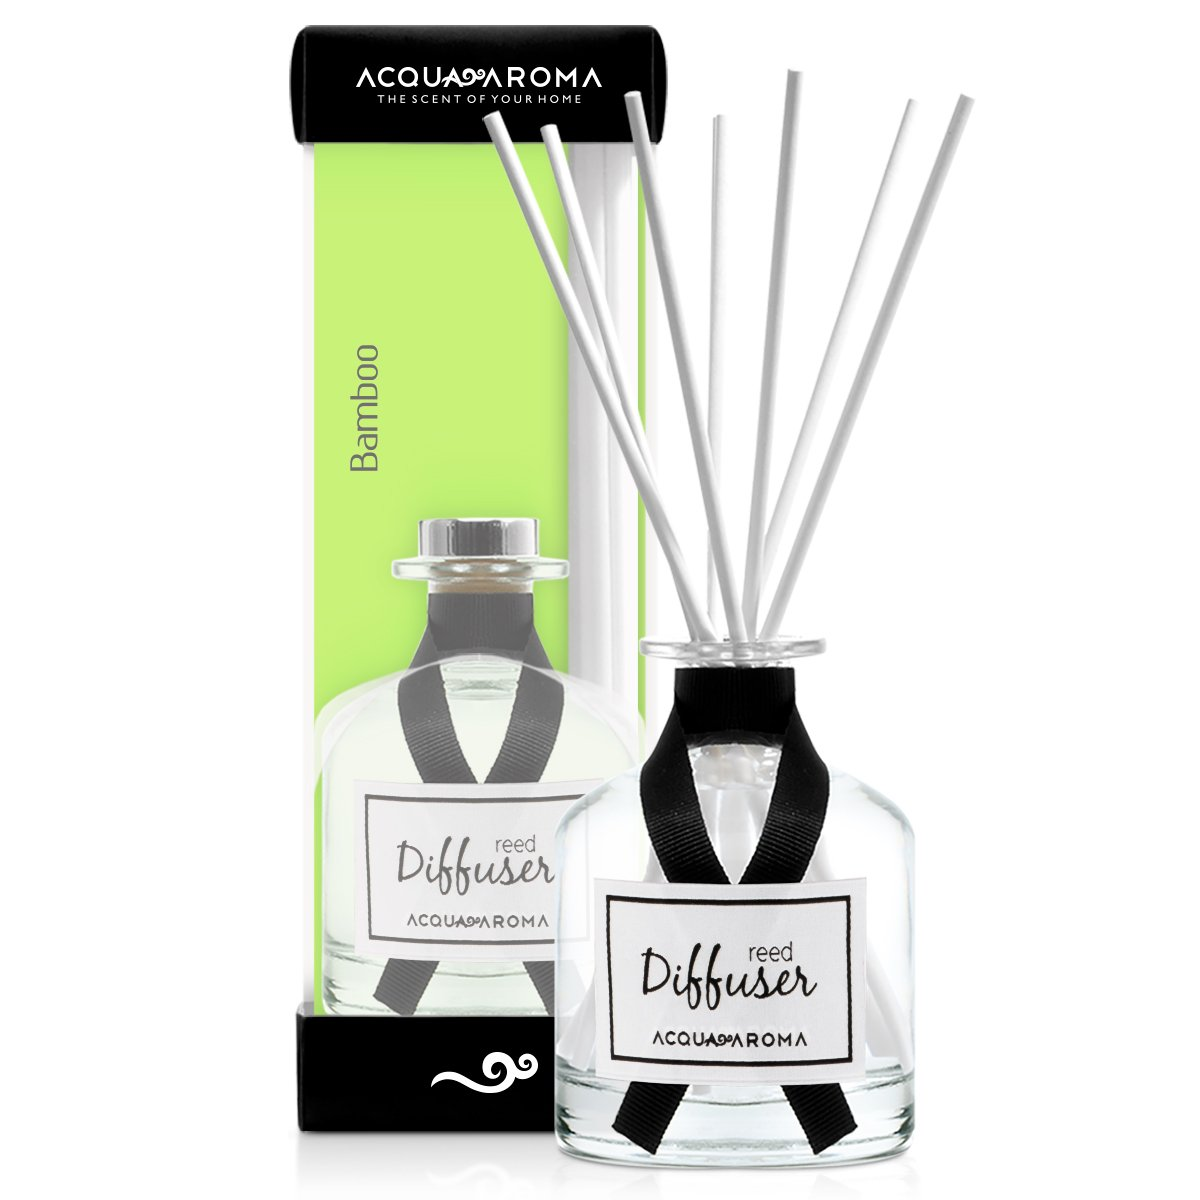 Acqua Aroma Everyday Collection Bamboo Reed Diffuser 8.1 FL OZ (240ml)